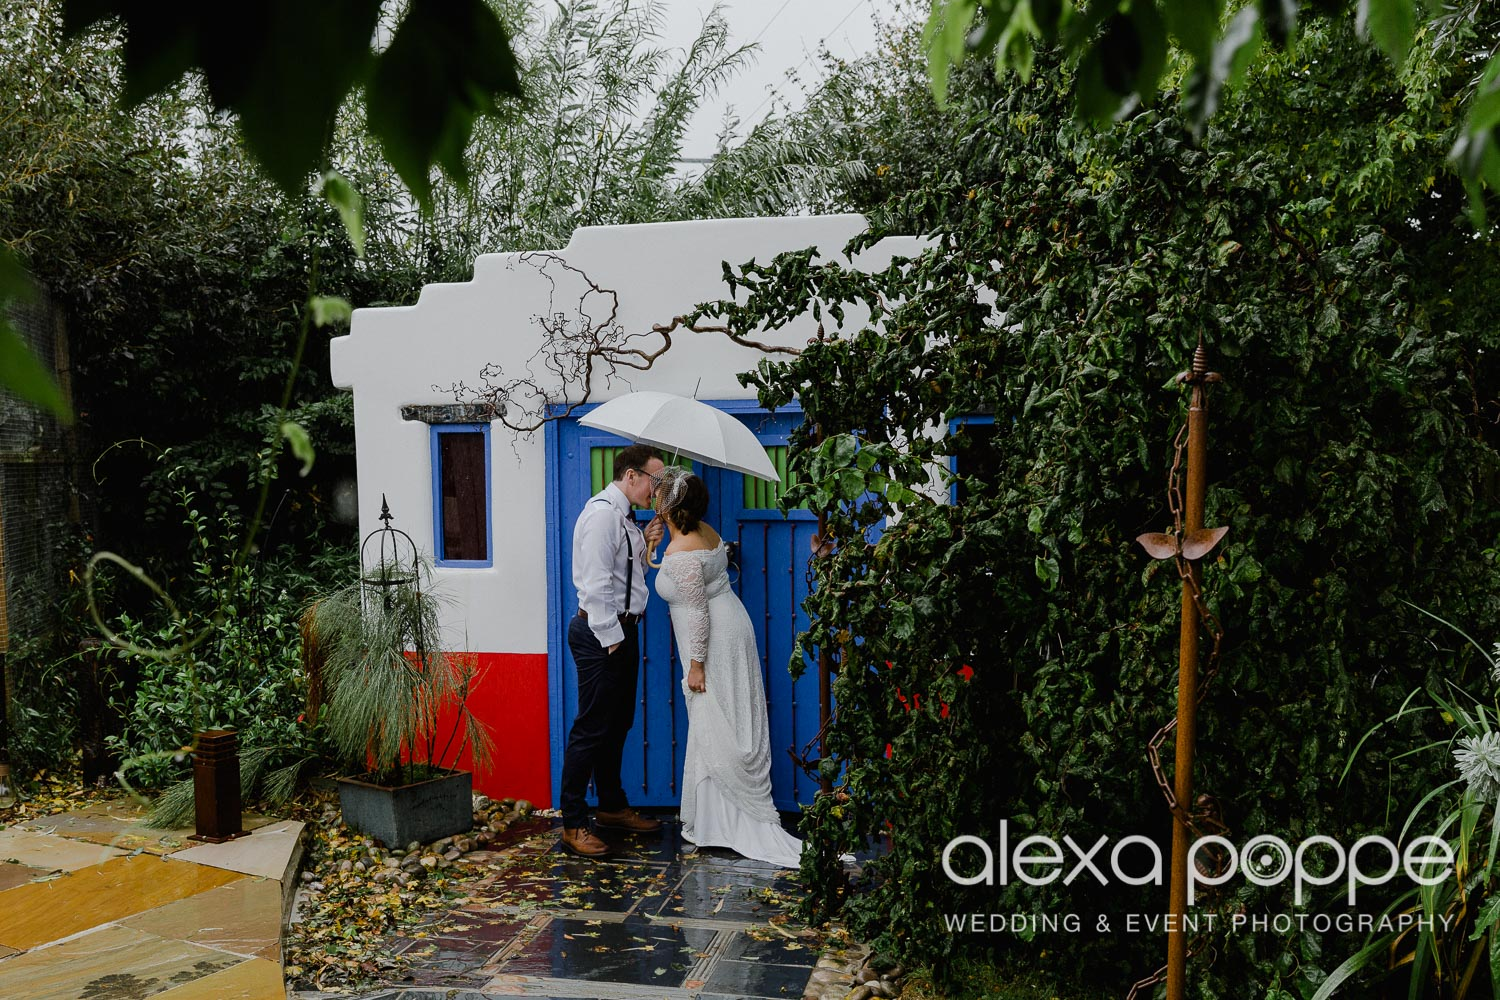 KM_elopement_lowerbarns_25.jpg